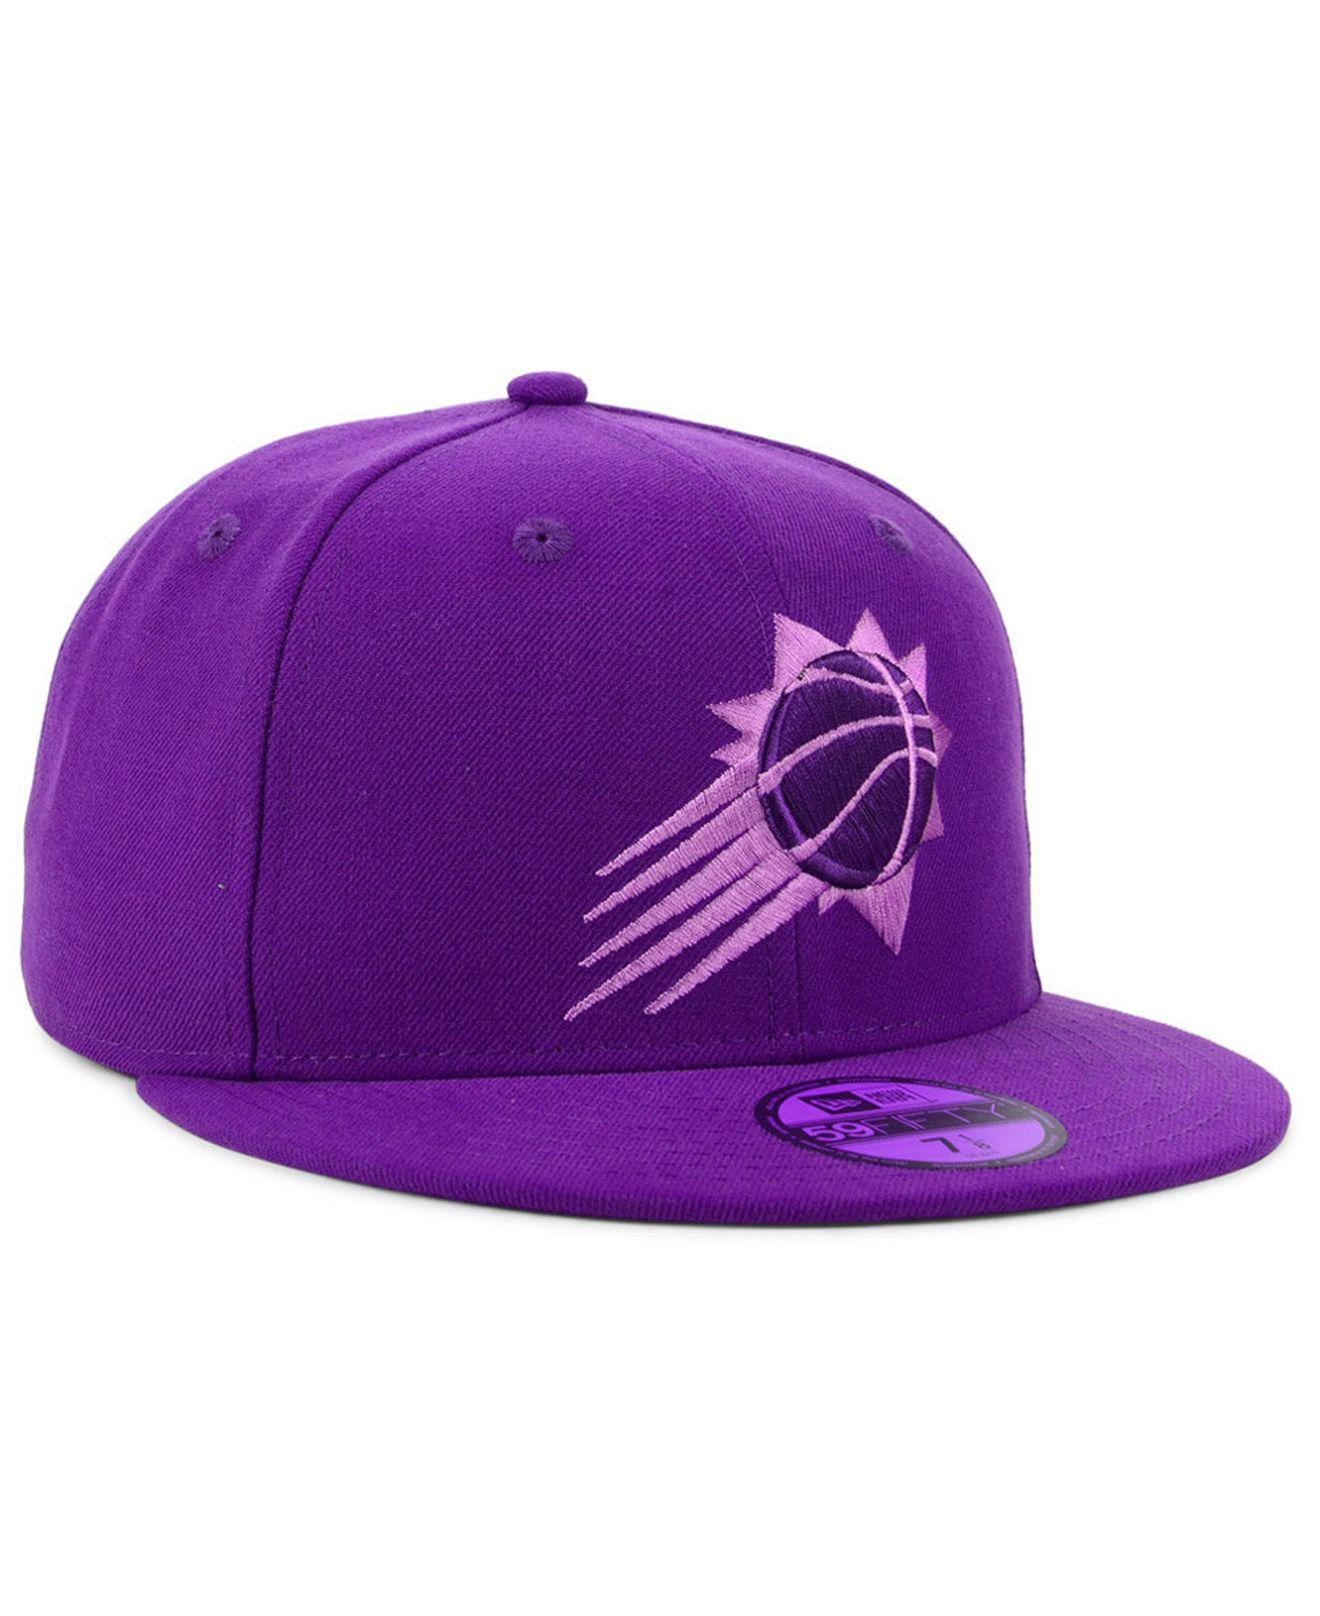 sports shoes e7358 a4574 KTZ - Purple Phoenix Suns Color Prism Pack 59fifty Fitted Cap for Men - Lyst.  View fullscreen